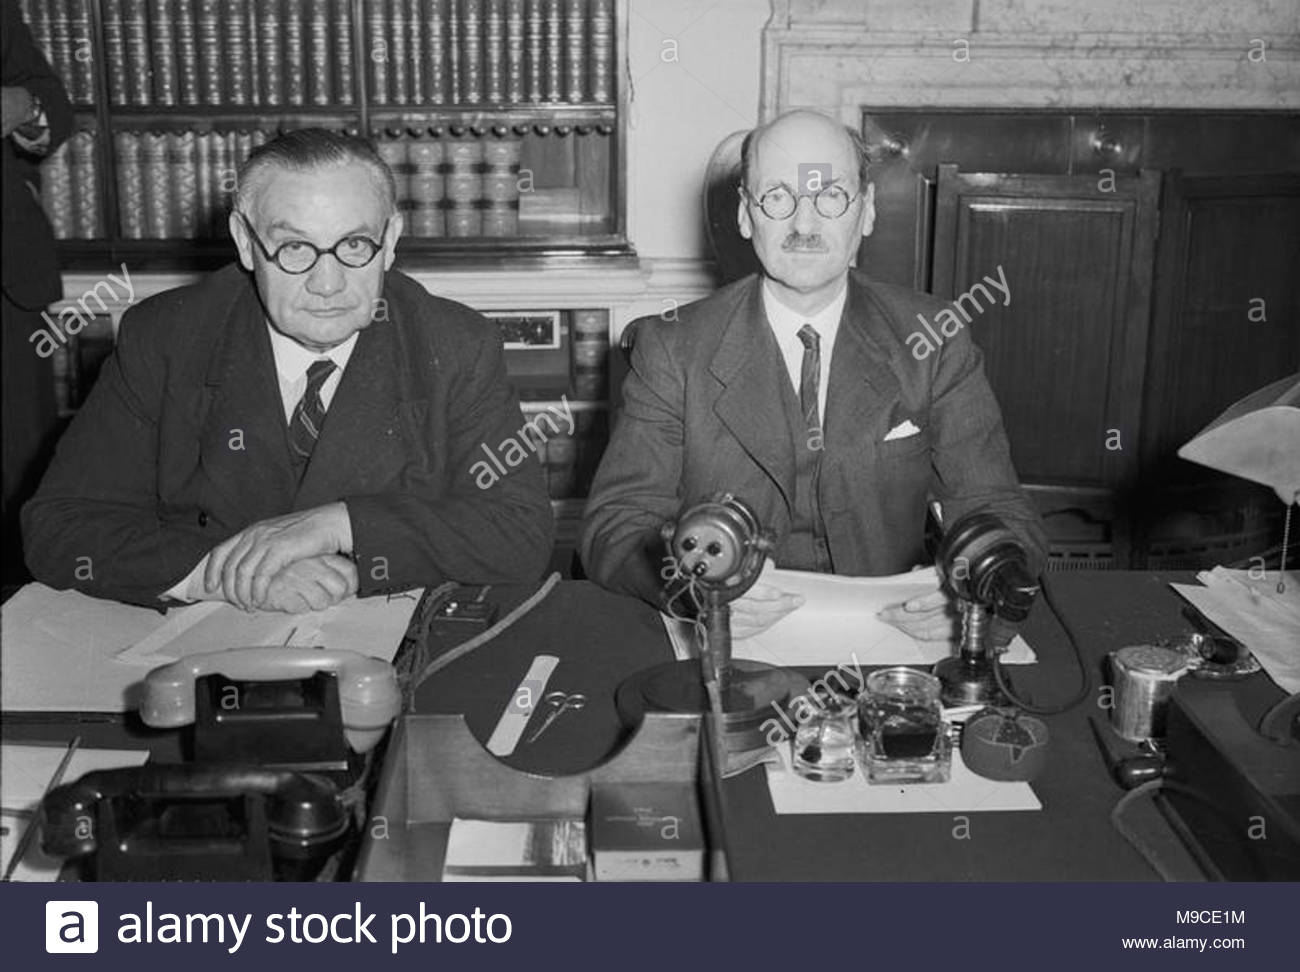 British Political Personalities 1936-1945 The Attlee Administration 1945 - 1951: Prime Minister Clement Attlee (right) and Foreign Secretary Ernest Bevin photographed at 10 Downing Street at midnight on 14 August 1945. They had just announced, in a speech broadcast to Britain and the Empire, the news of the Japanese surrender. - Stock Image